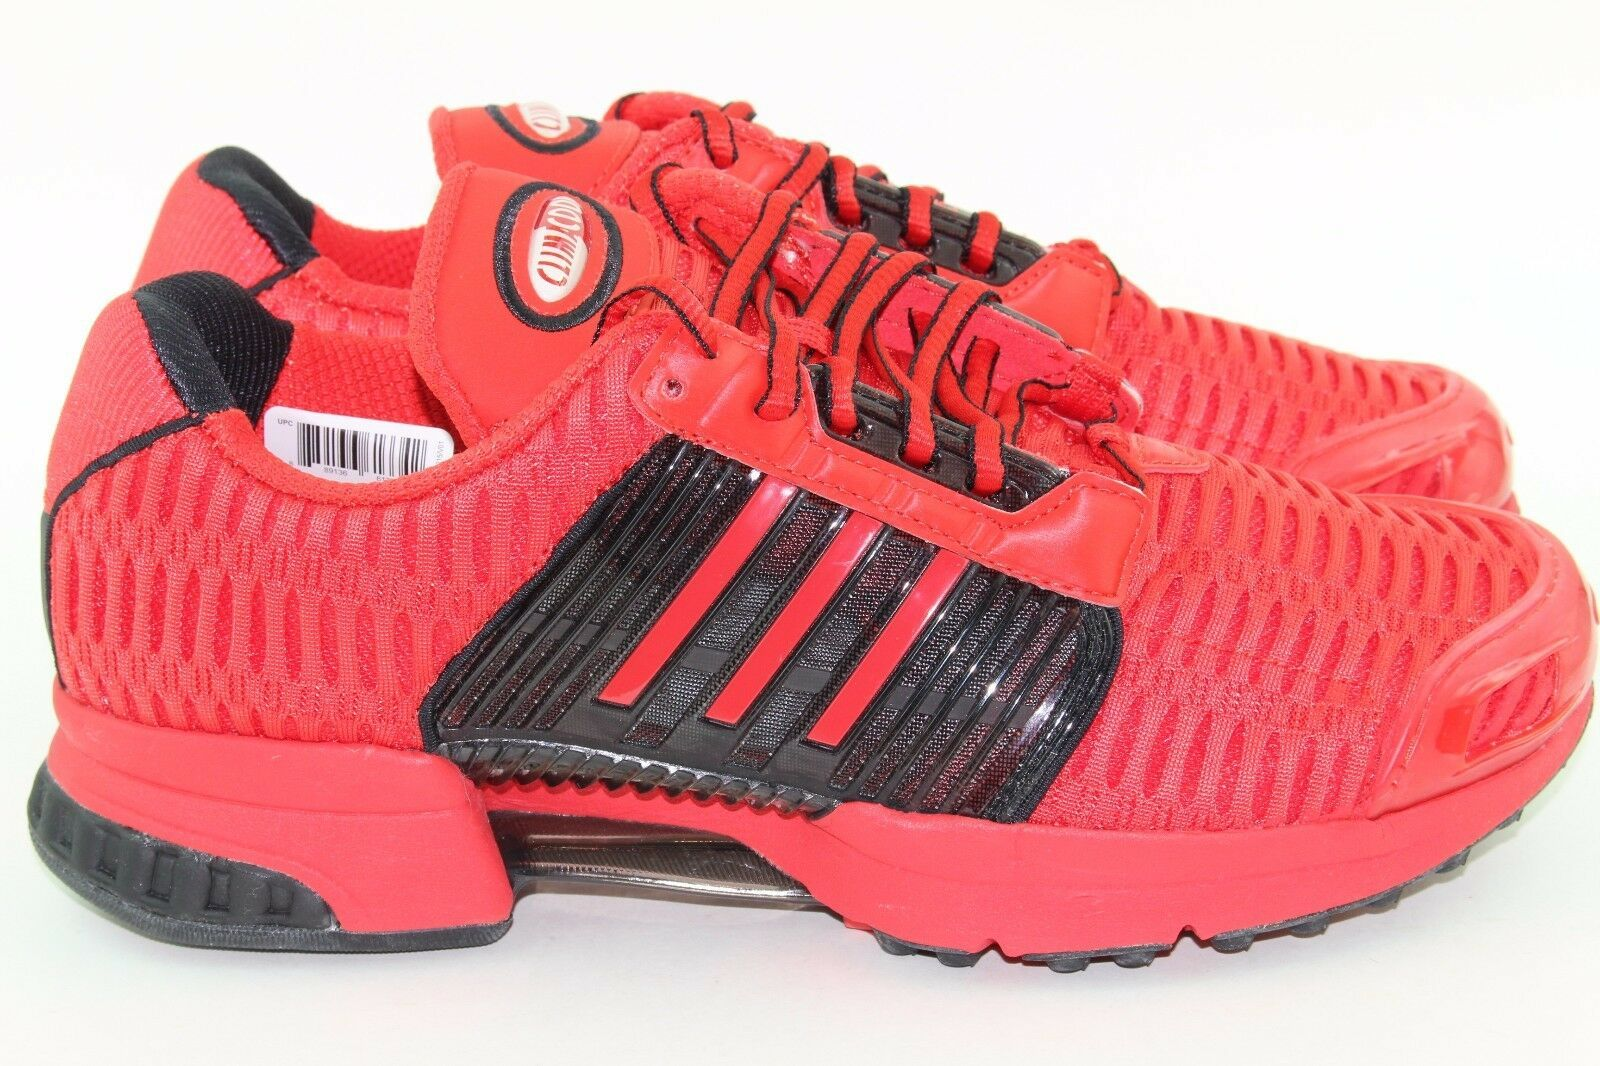 ADIDAS CLIMA COOL 1 MEN SIZE 8.5 RED 360 DEGREE COOLING NEW RARE AUTHENTIC - $118.79